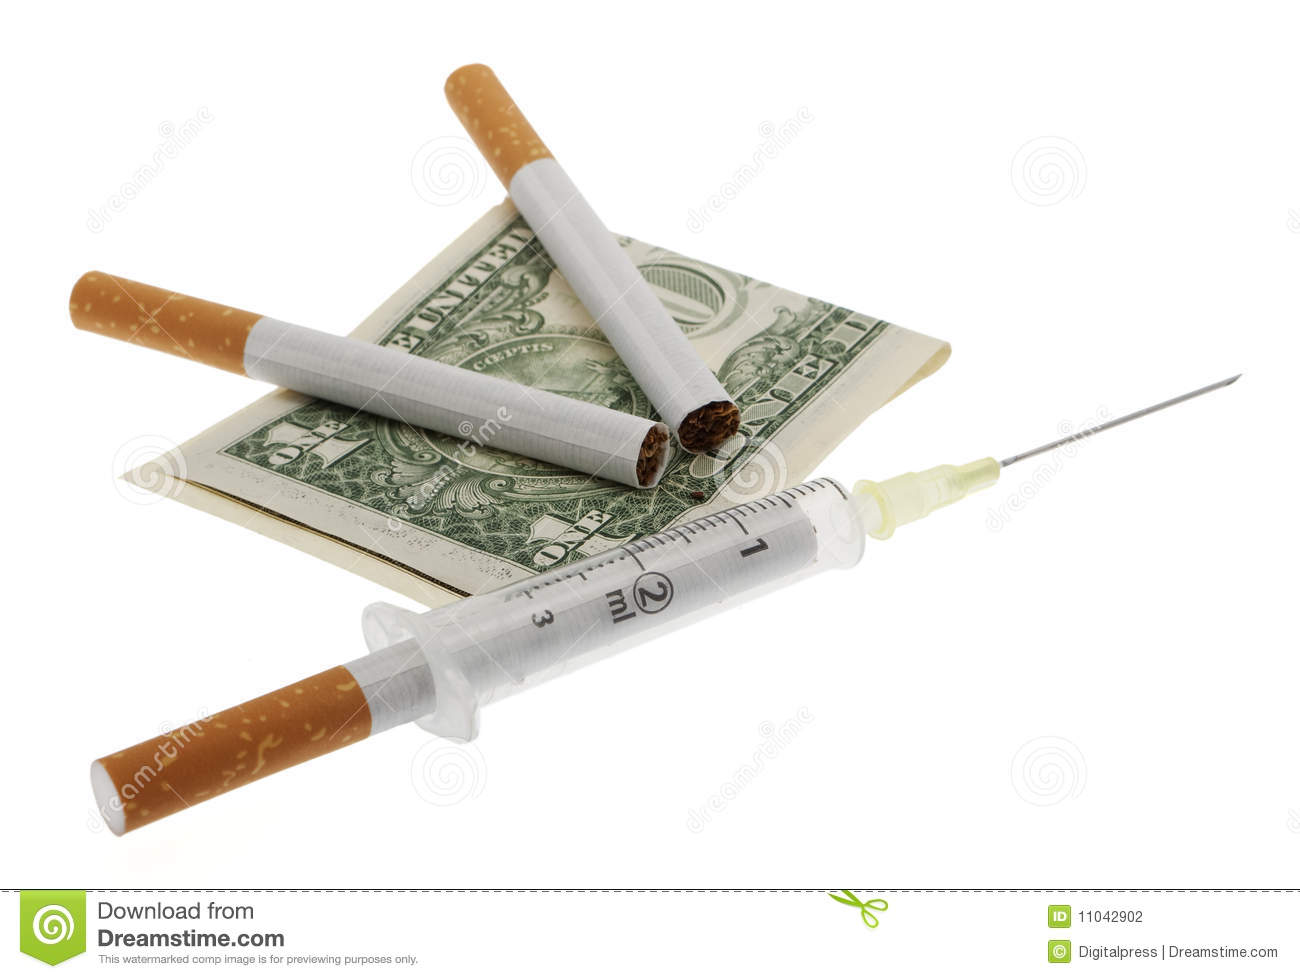 The reasons why smoking is bad for you